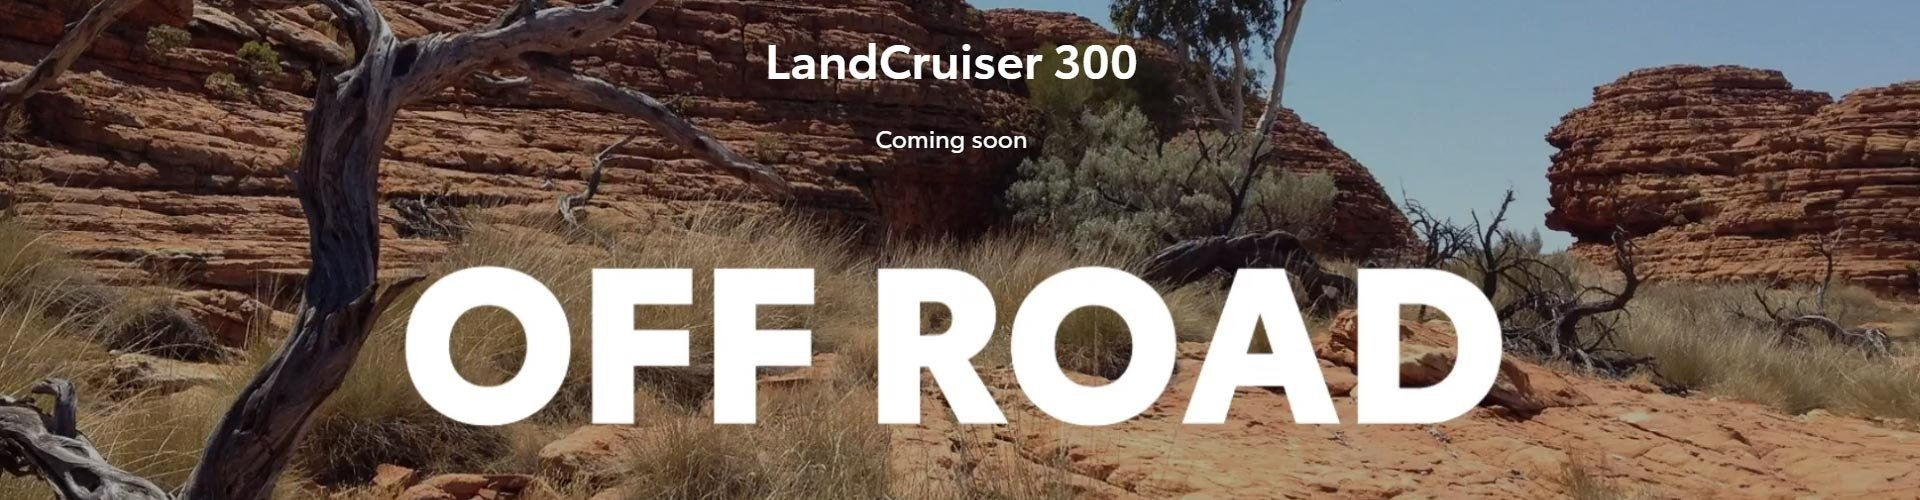 All-New Toyota LandCruiser 300 Coming Soon